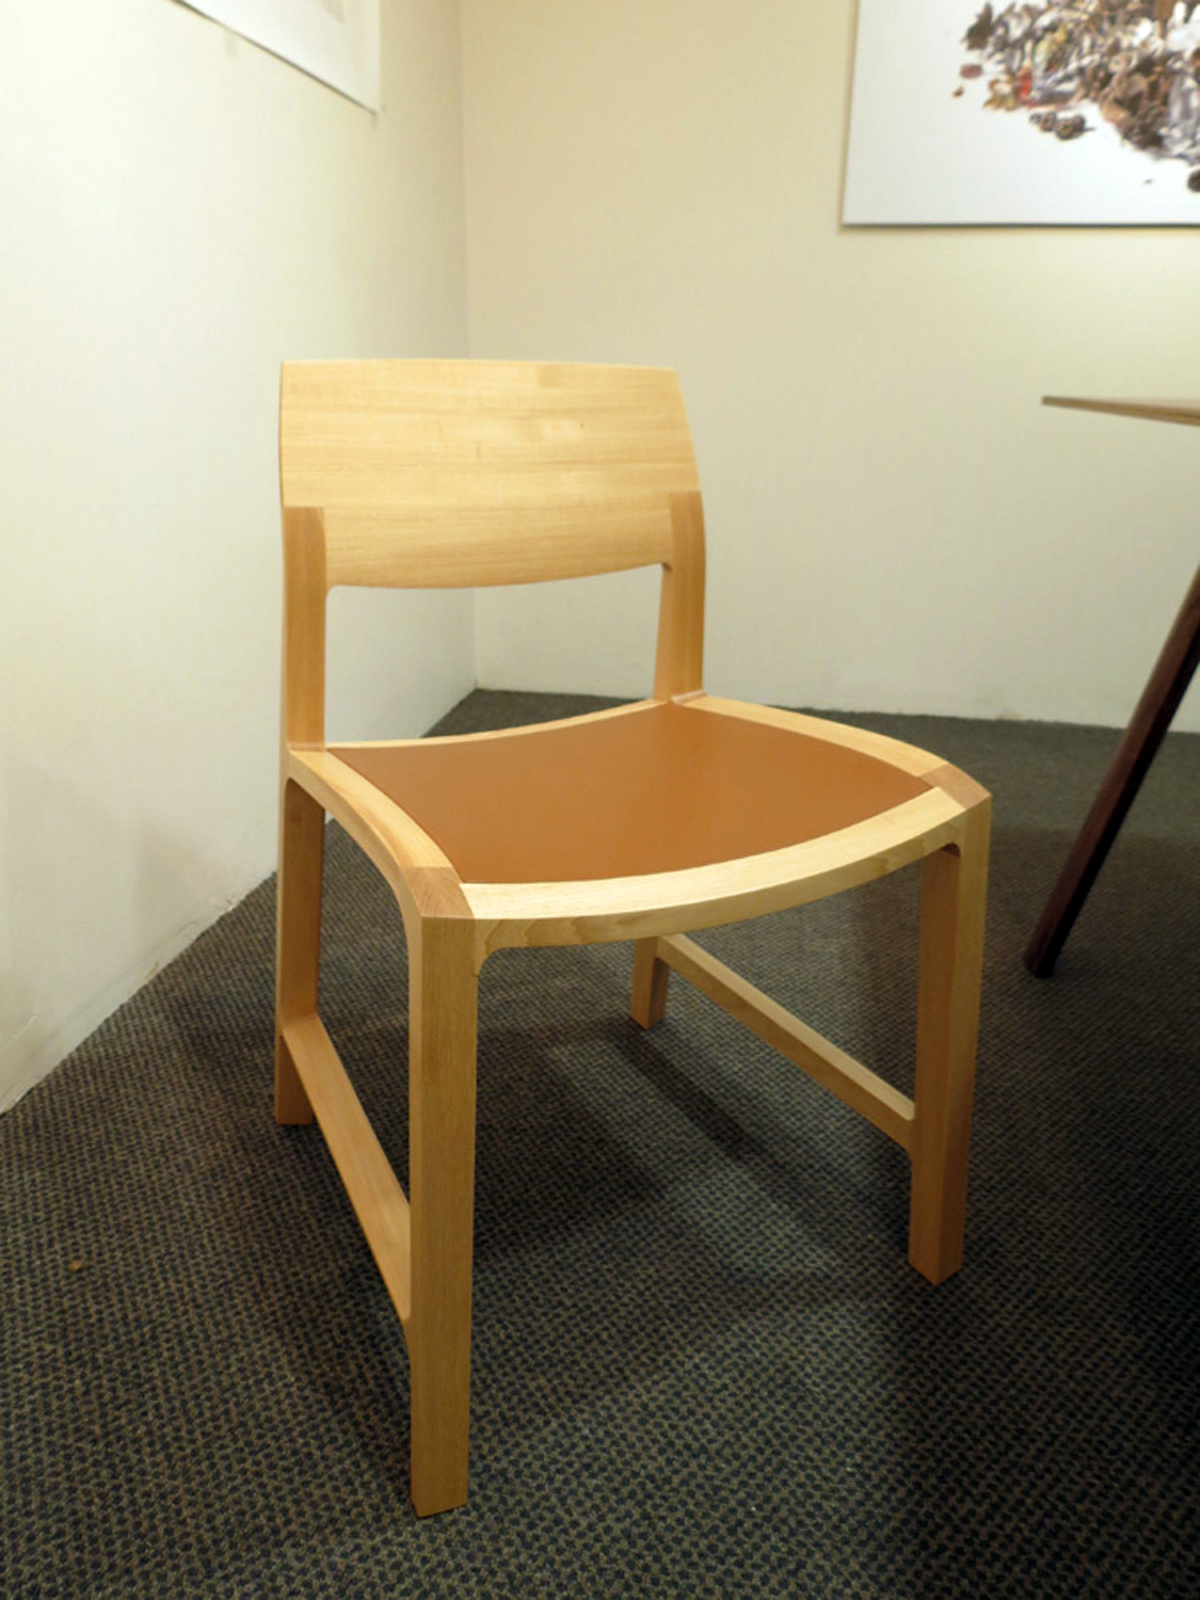 38.  Fletcher Chair , Adam Cruickshank, hickory, full aniline leather, $1,300